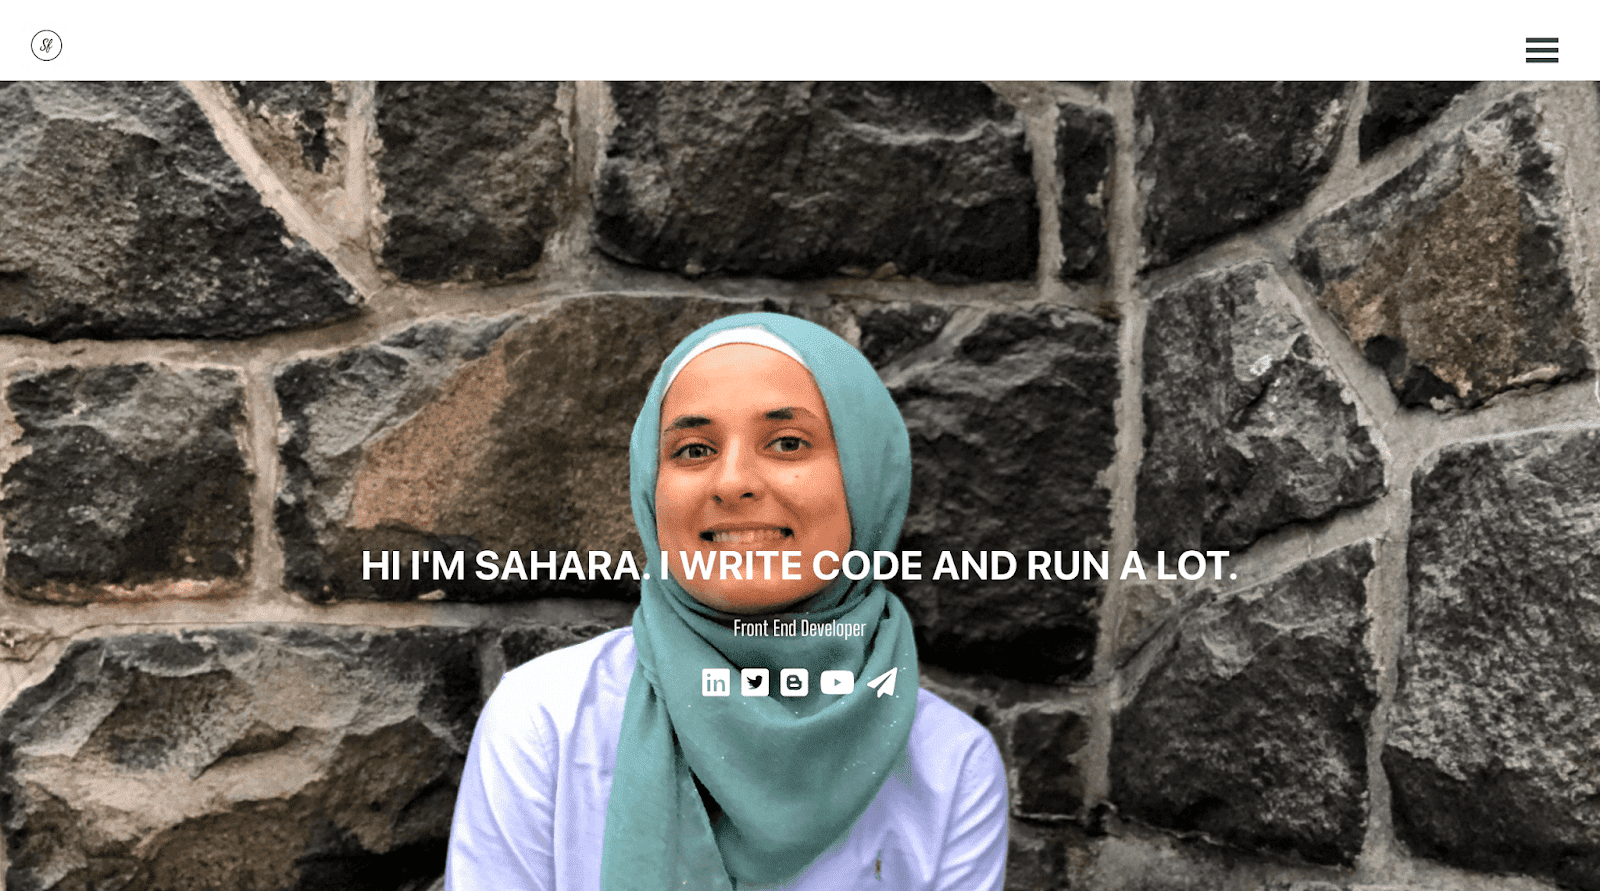 home page of my portfolio - written on it it says: Hi I'm sahara. I write code and run a lot. Sub heading is 'Front End Developer' and below are my social media links